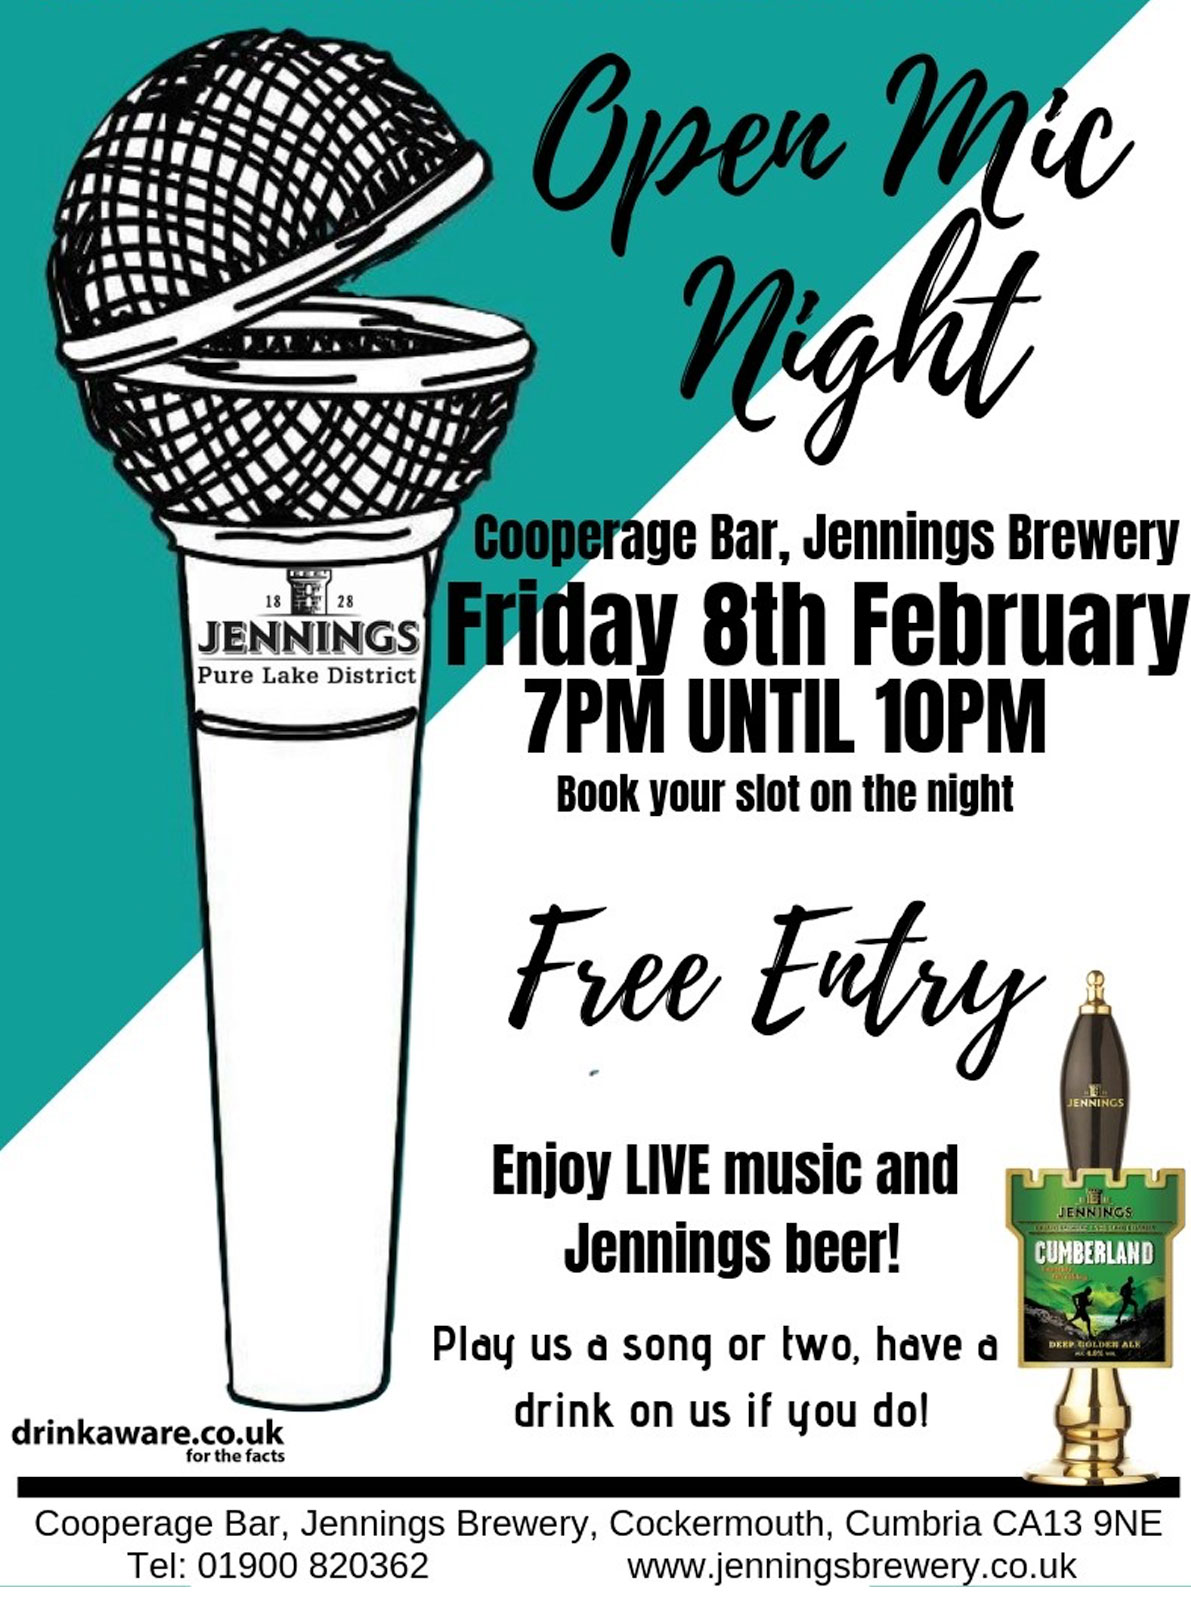 Jennings presents its first Open Mic night on Friday 8th February